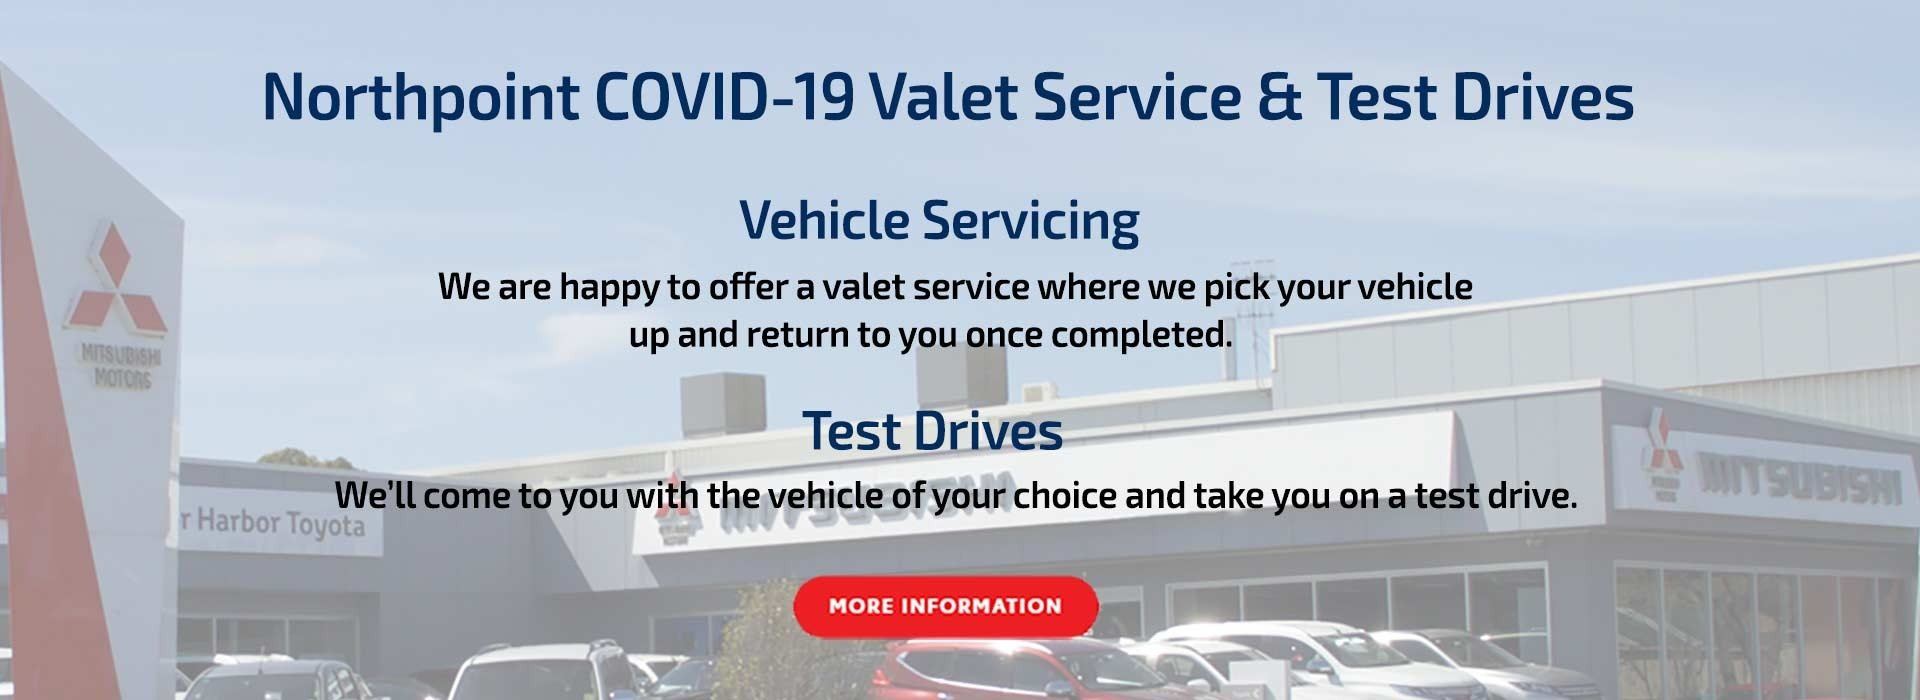 Northpoint COVID-19 Valet Offer We'll come to you